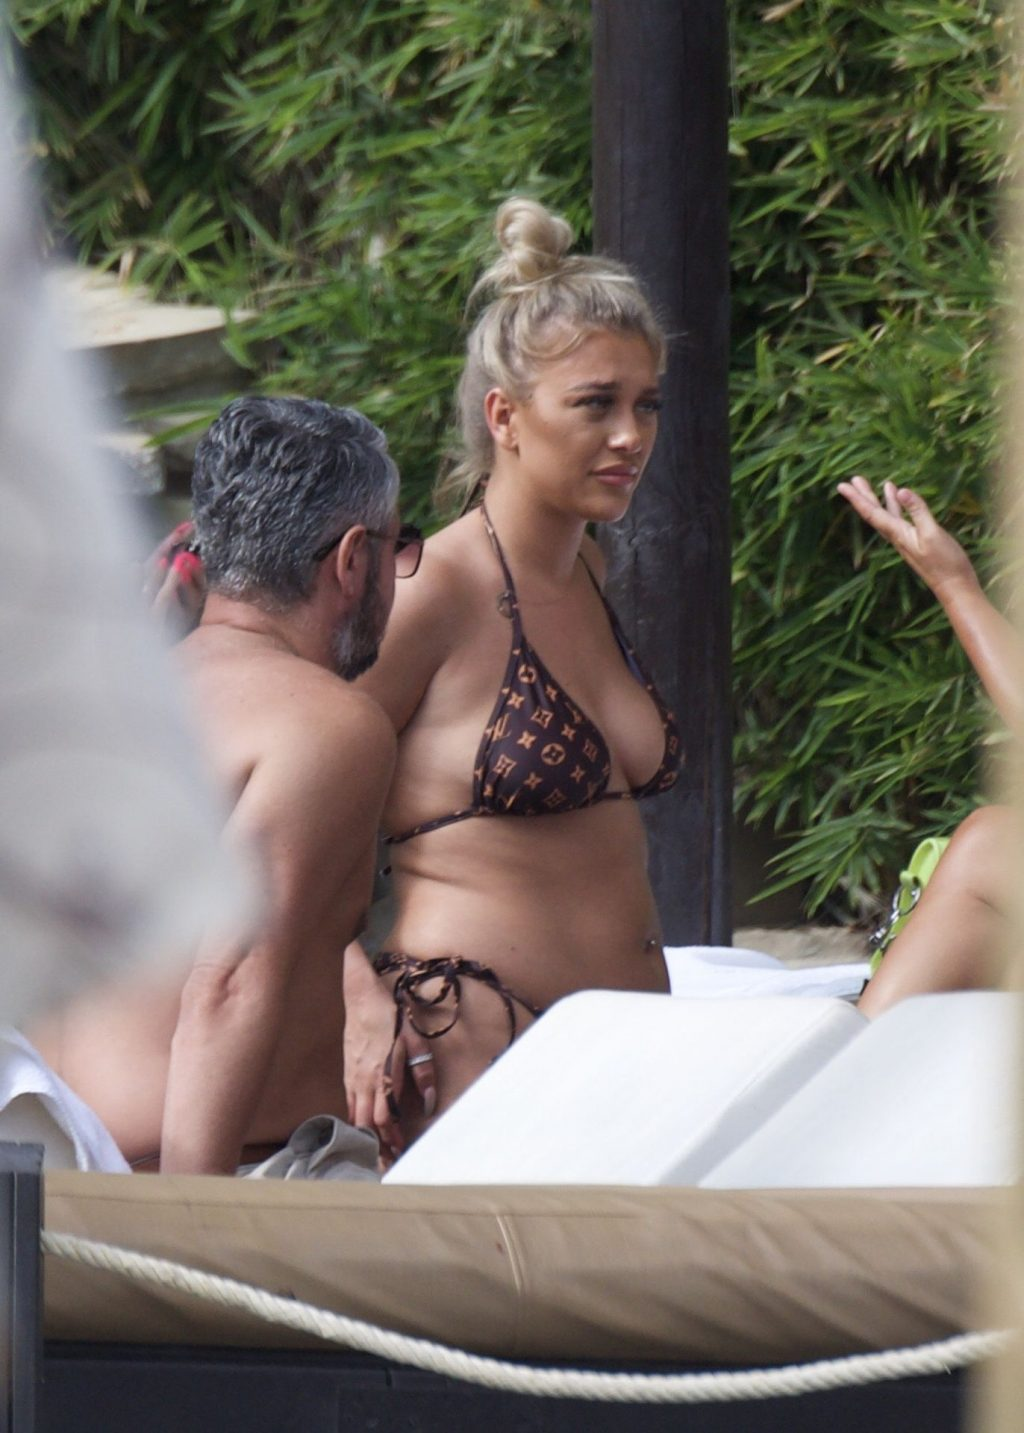 Bethan Kershaw Shows Off Her Tits & Butt in Marbella (4 Photos)